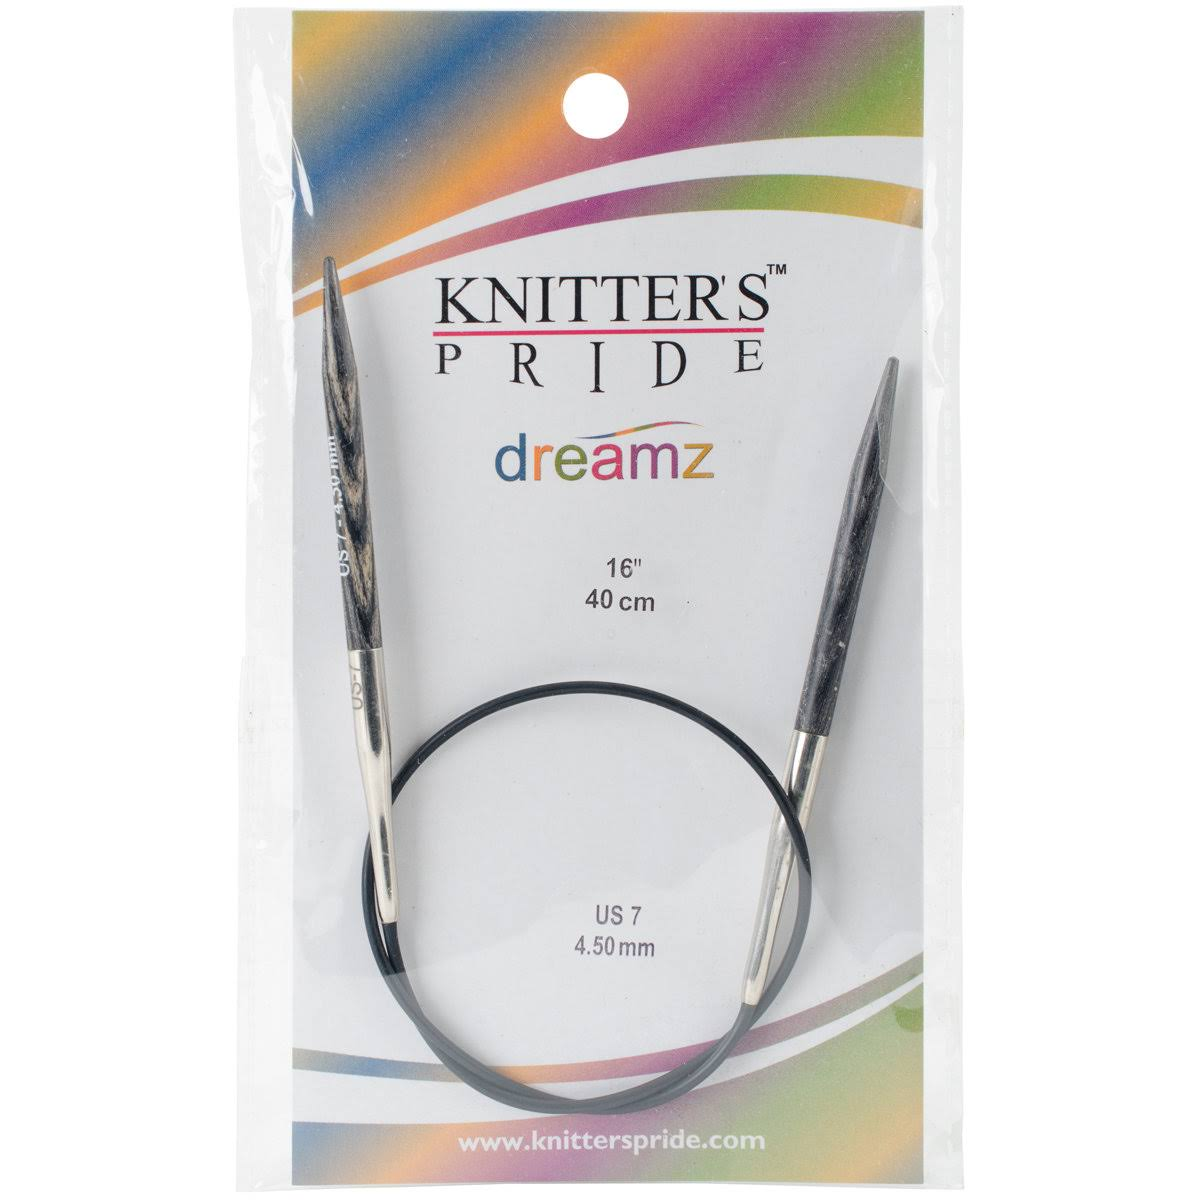 "Knitters Pride Dreamz Circular Knitting Needles - 16"", Size 7"